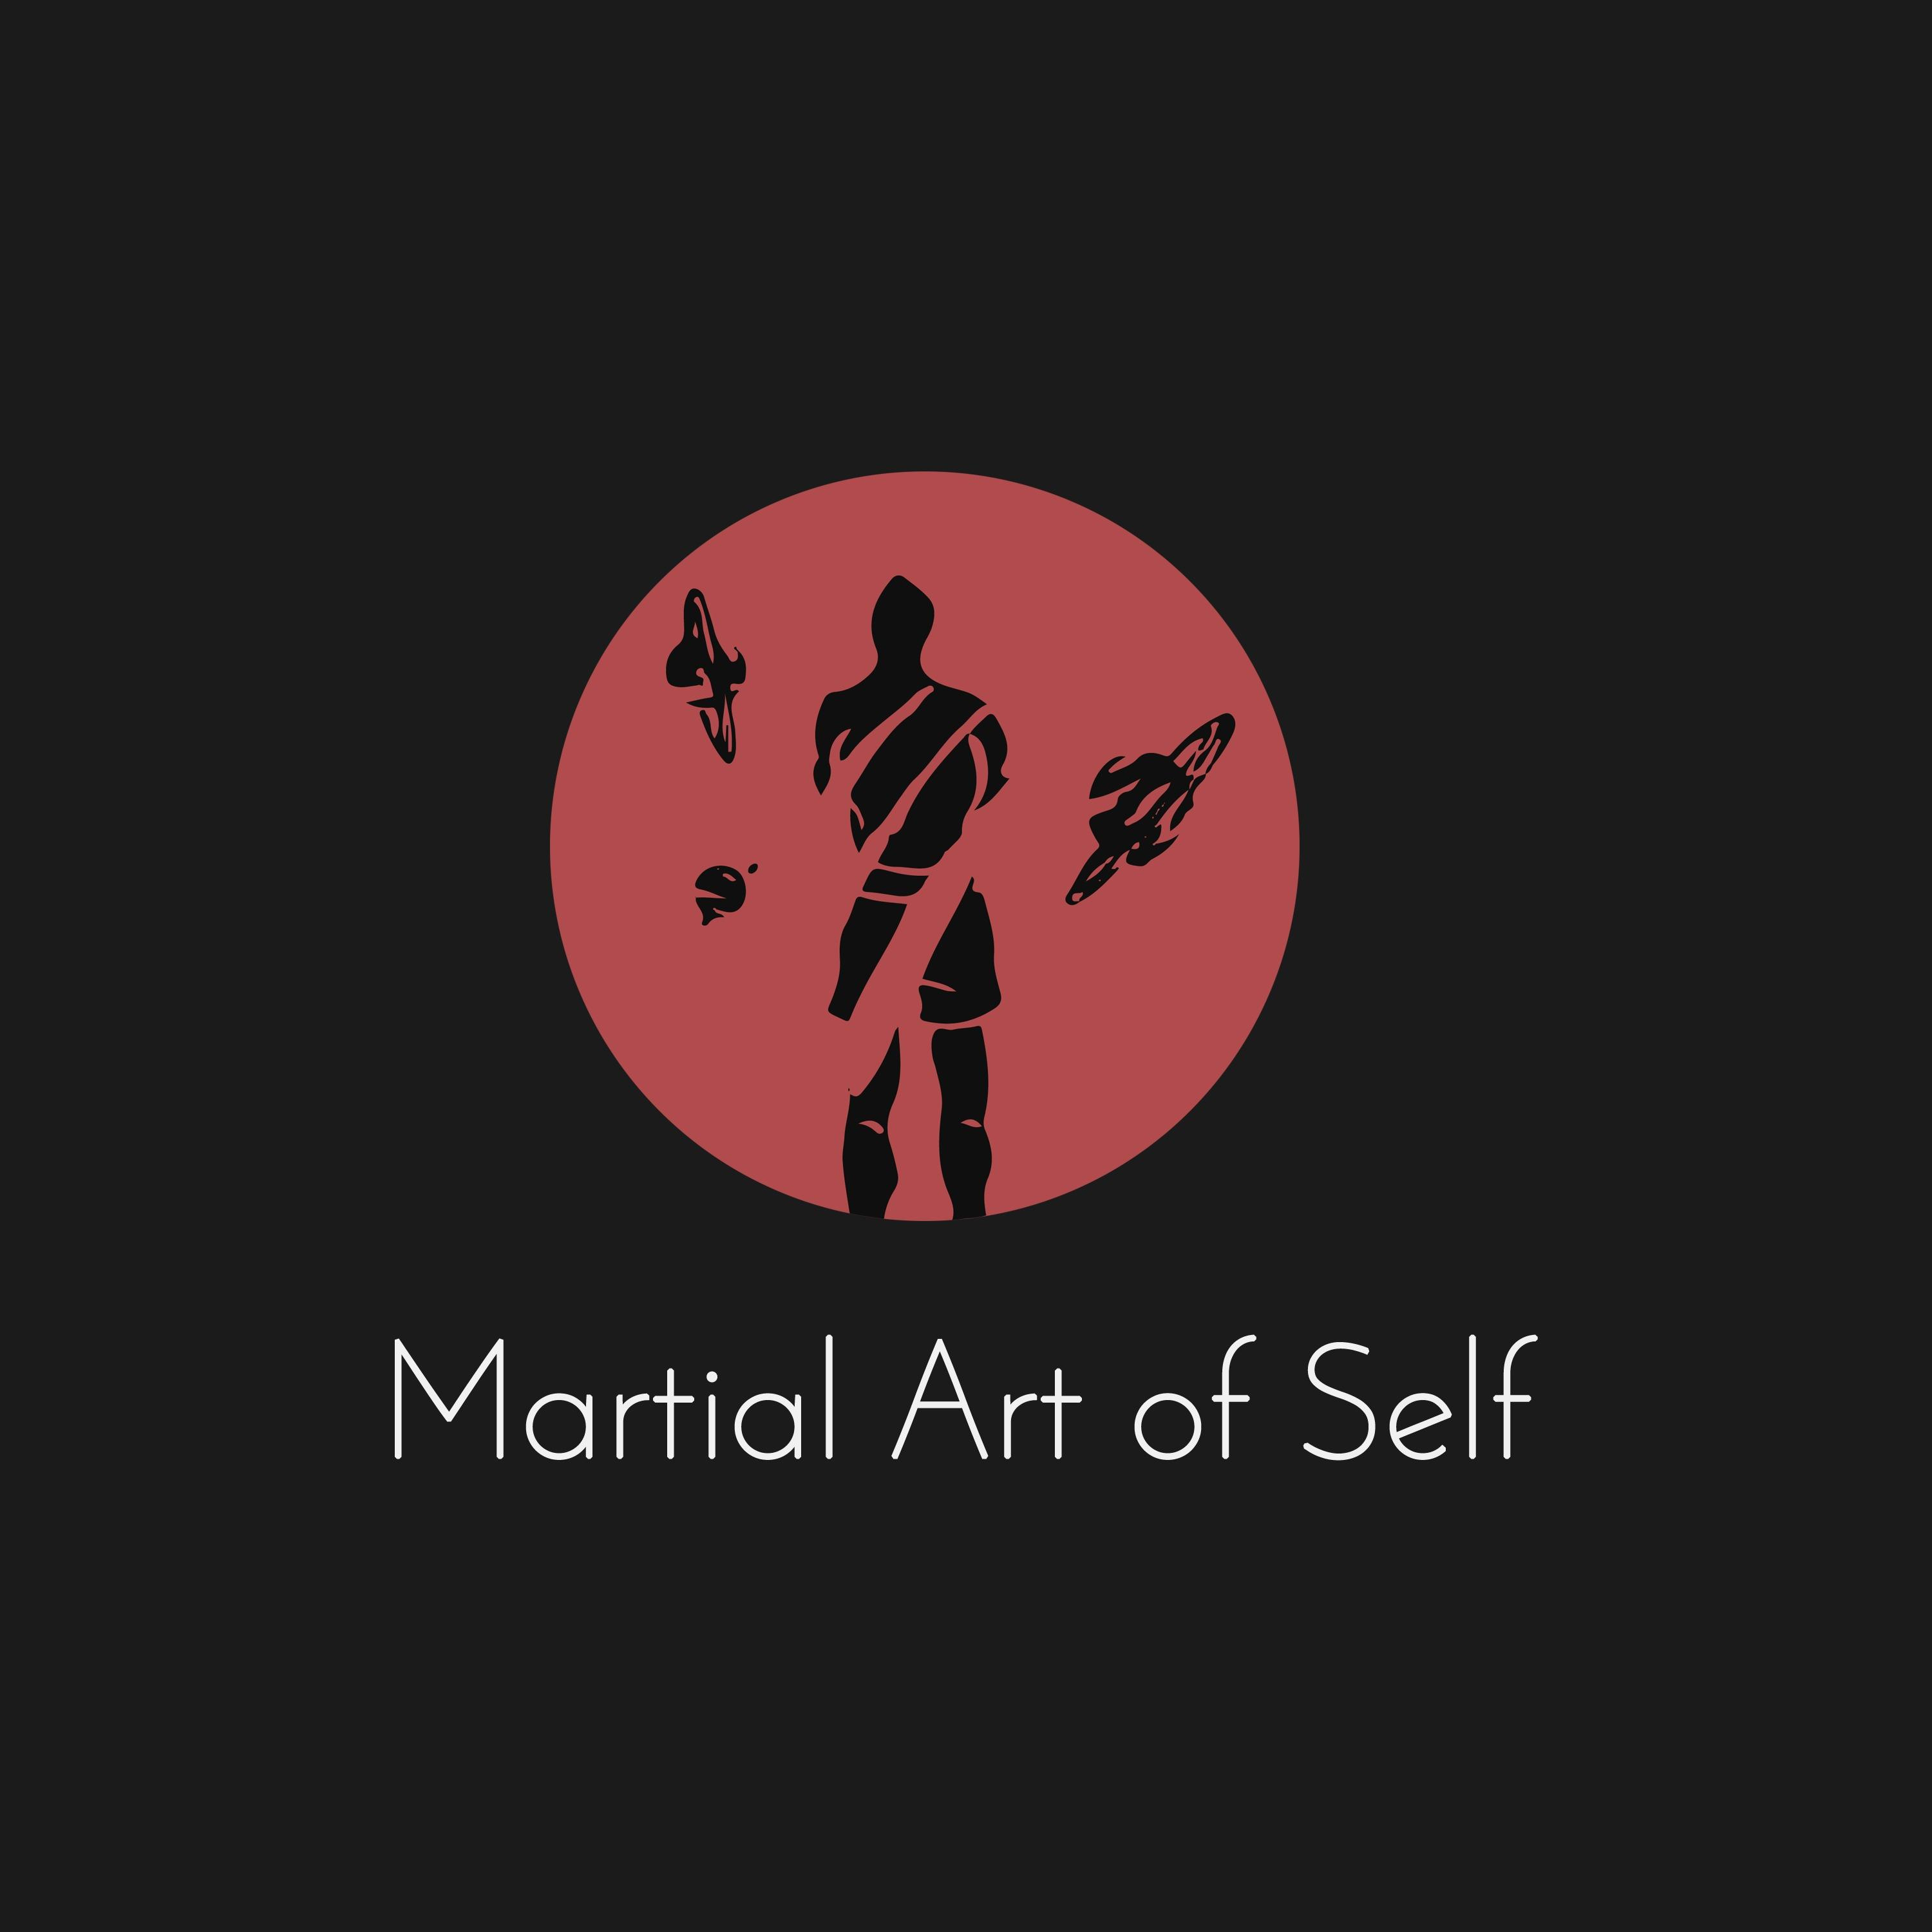 This is Martial Art of Self